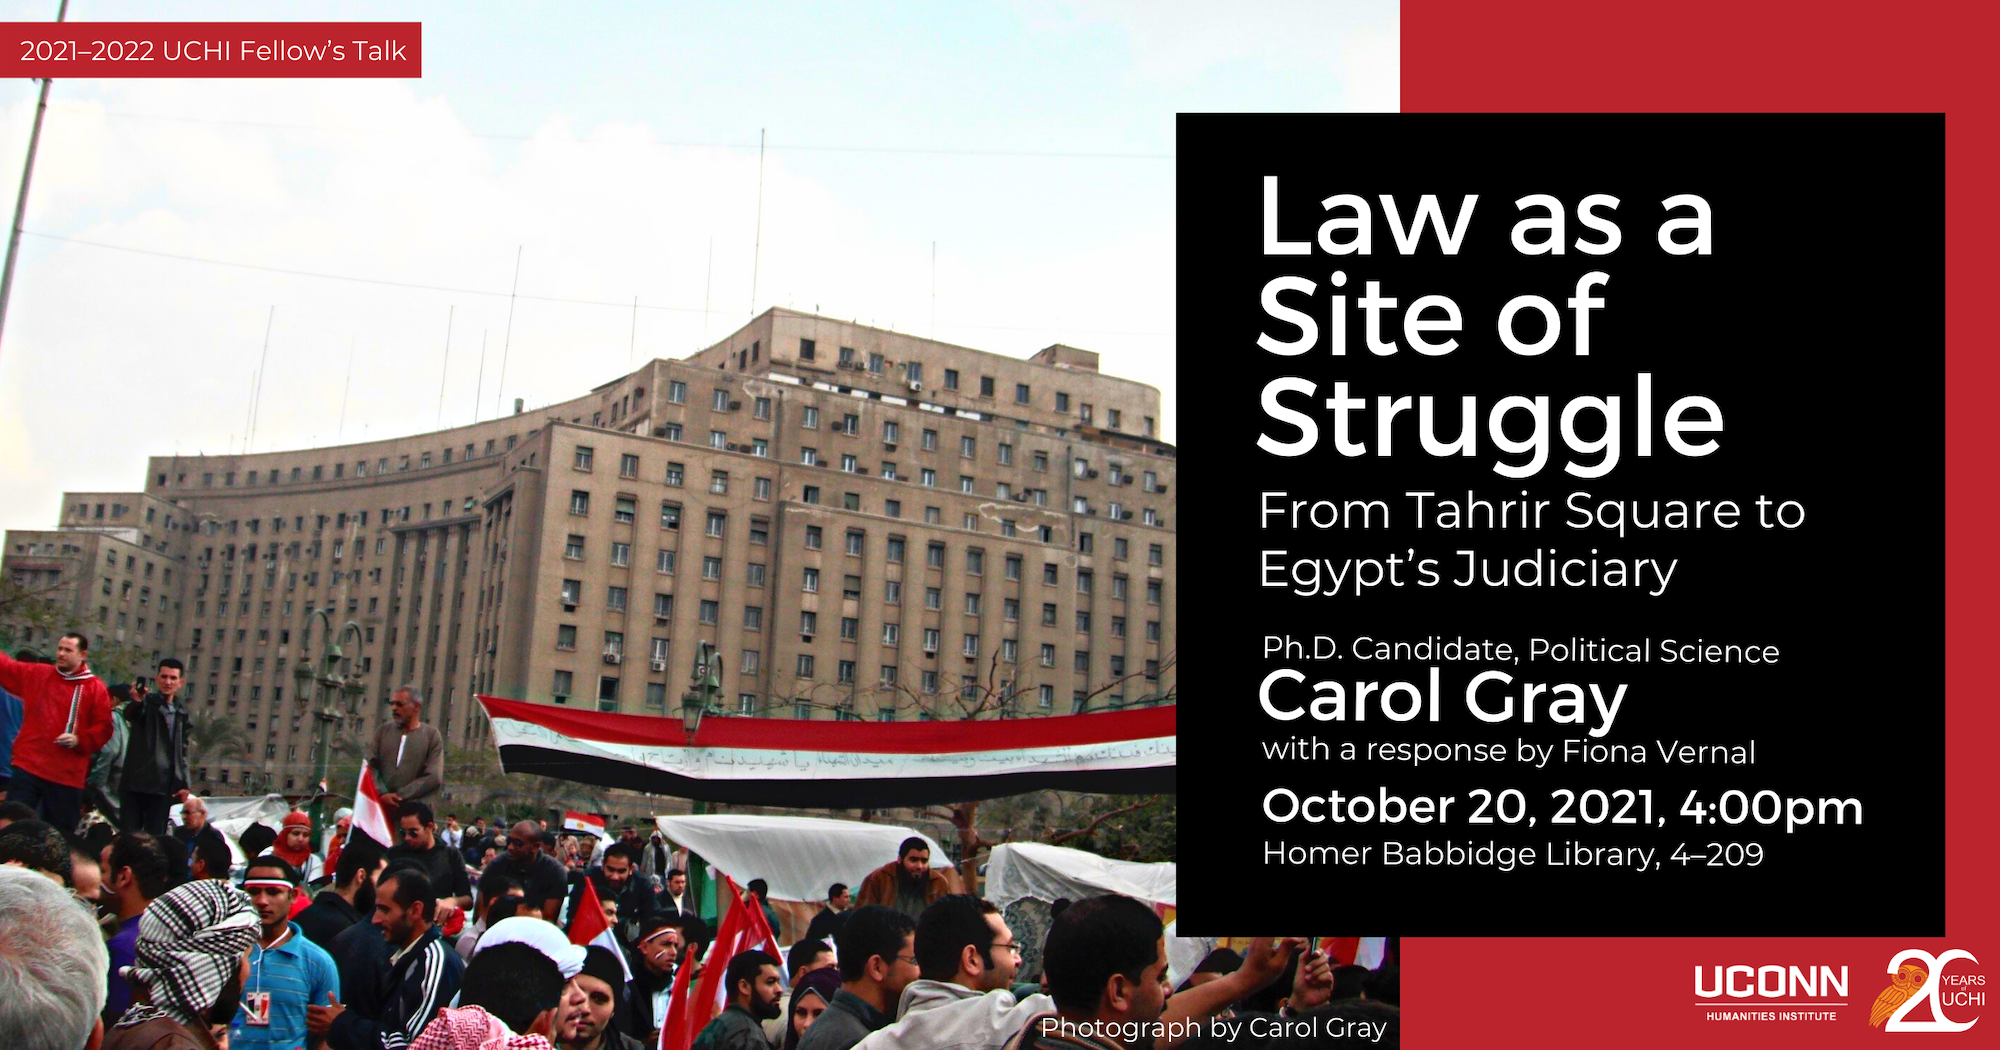 2021-22 UCHI fellow's Talk. Law as a site of struggle: From Tahrir Square to Egypt's Judiciary. PhD Candidate, Political Science Carol Gray. With a response by Fiona Vernal. October 20, 2021, 4:00pm. Homer Babbidge Library 4-209